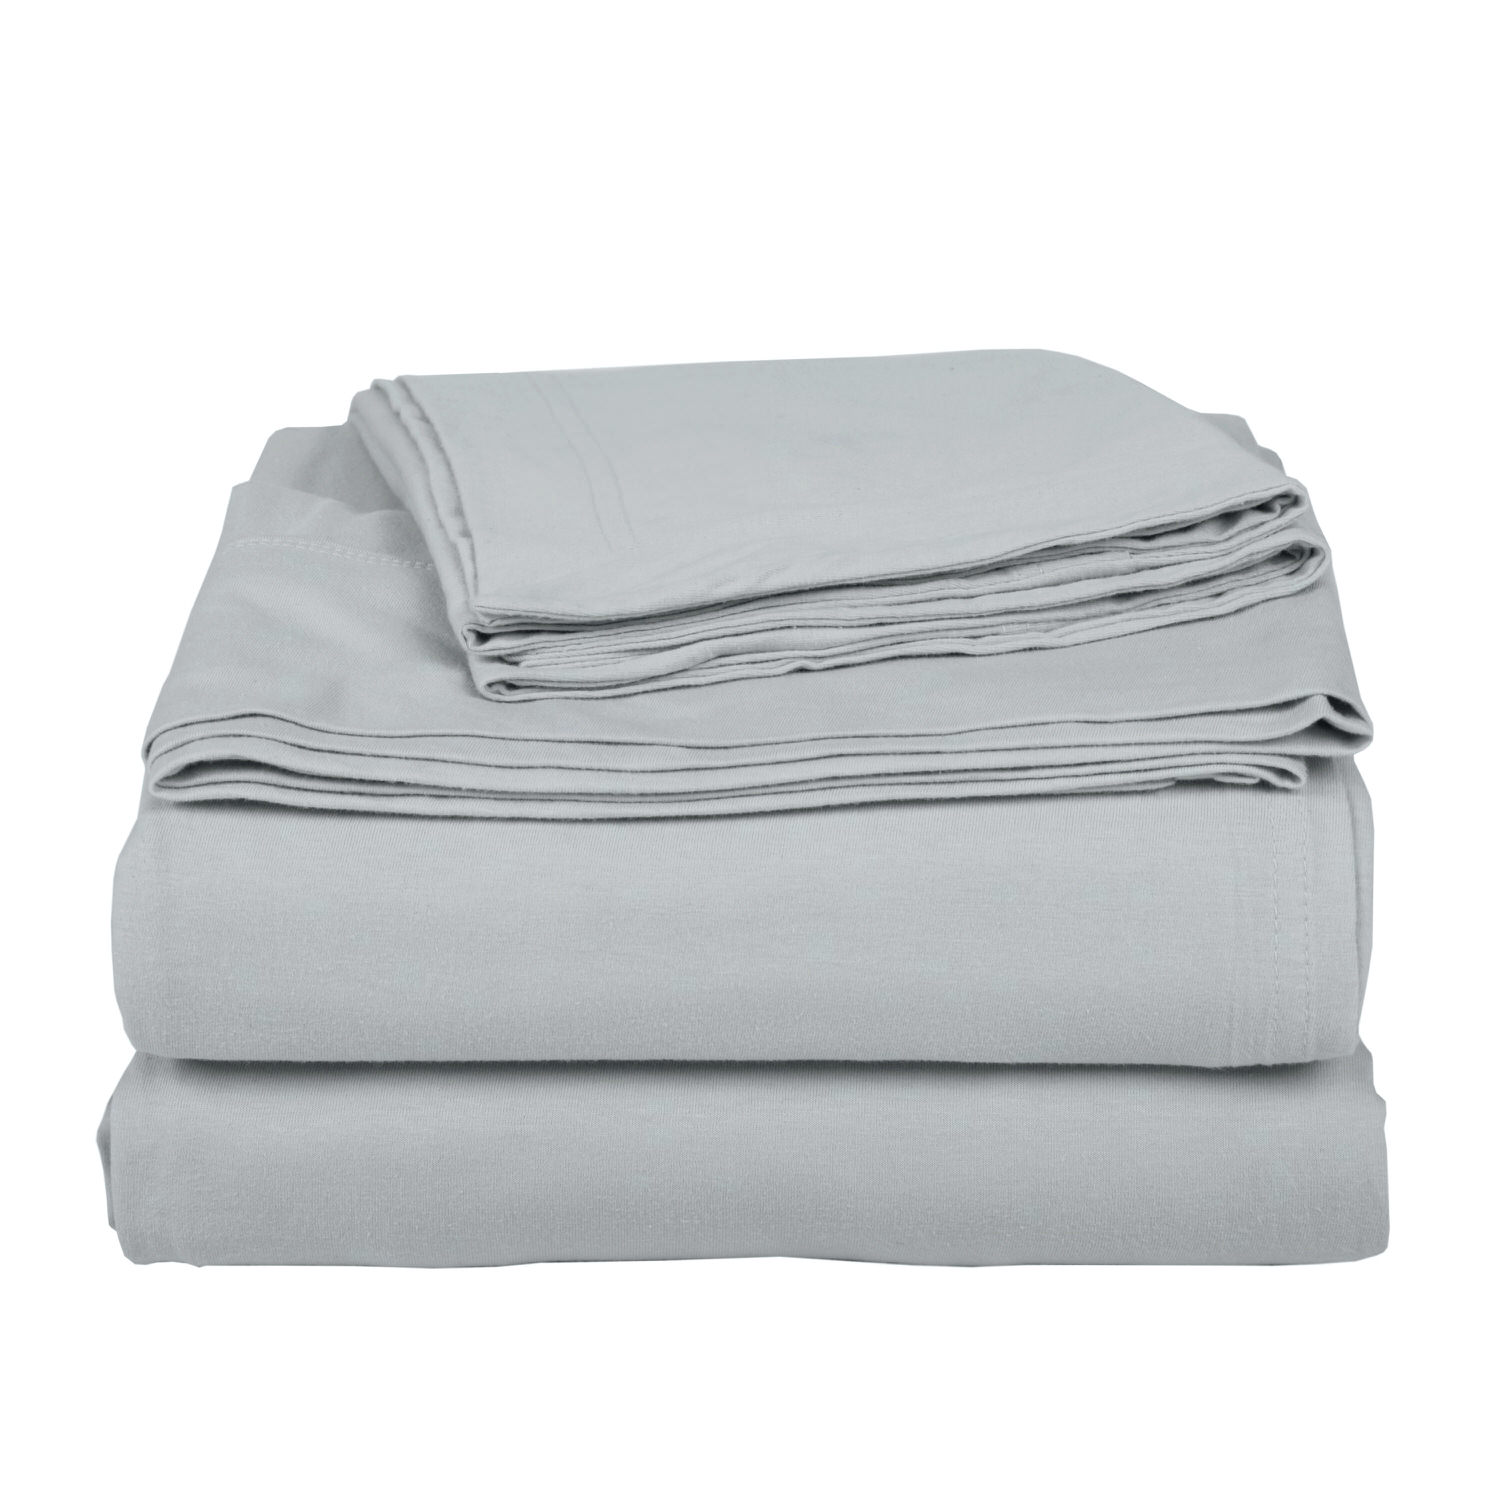 Cotton Silver Bed Sheet Set